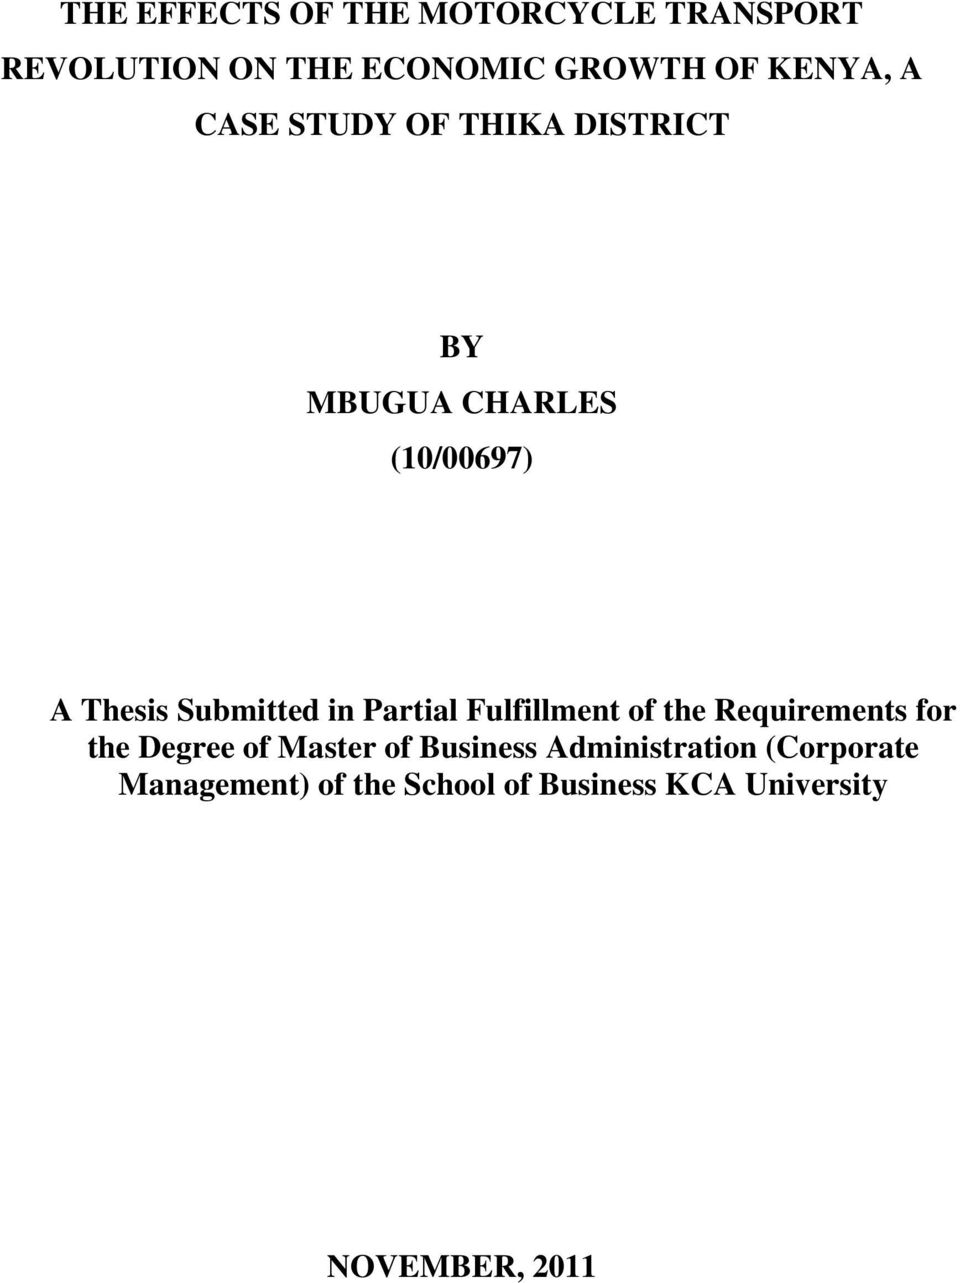 Partial Fulfillment of the Requirements for the Degree of Master of Business